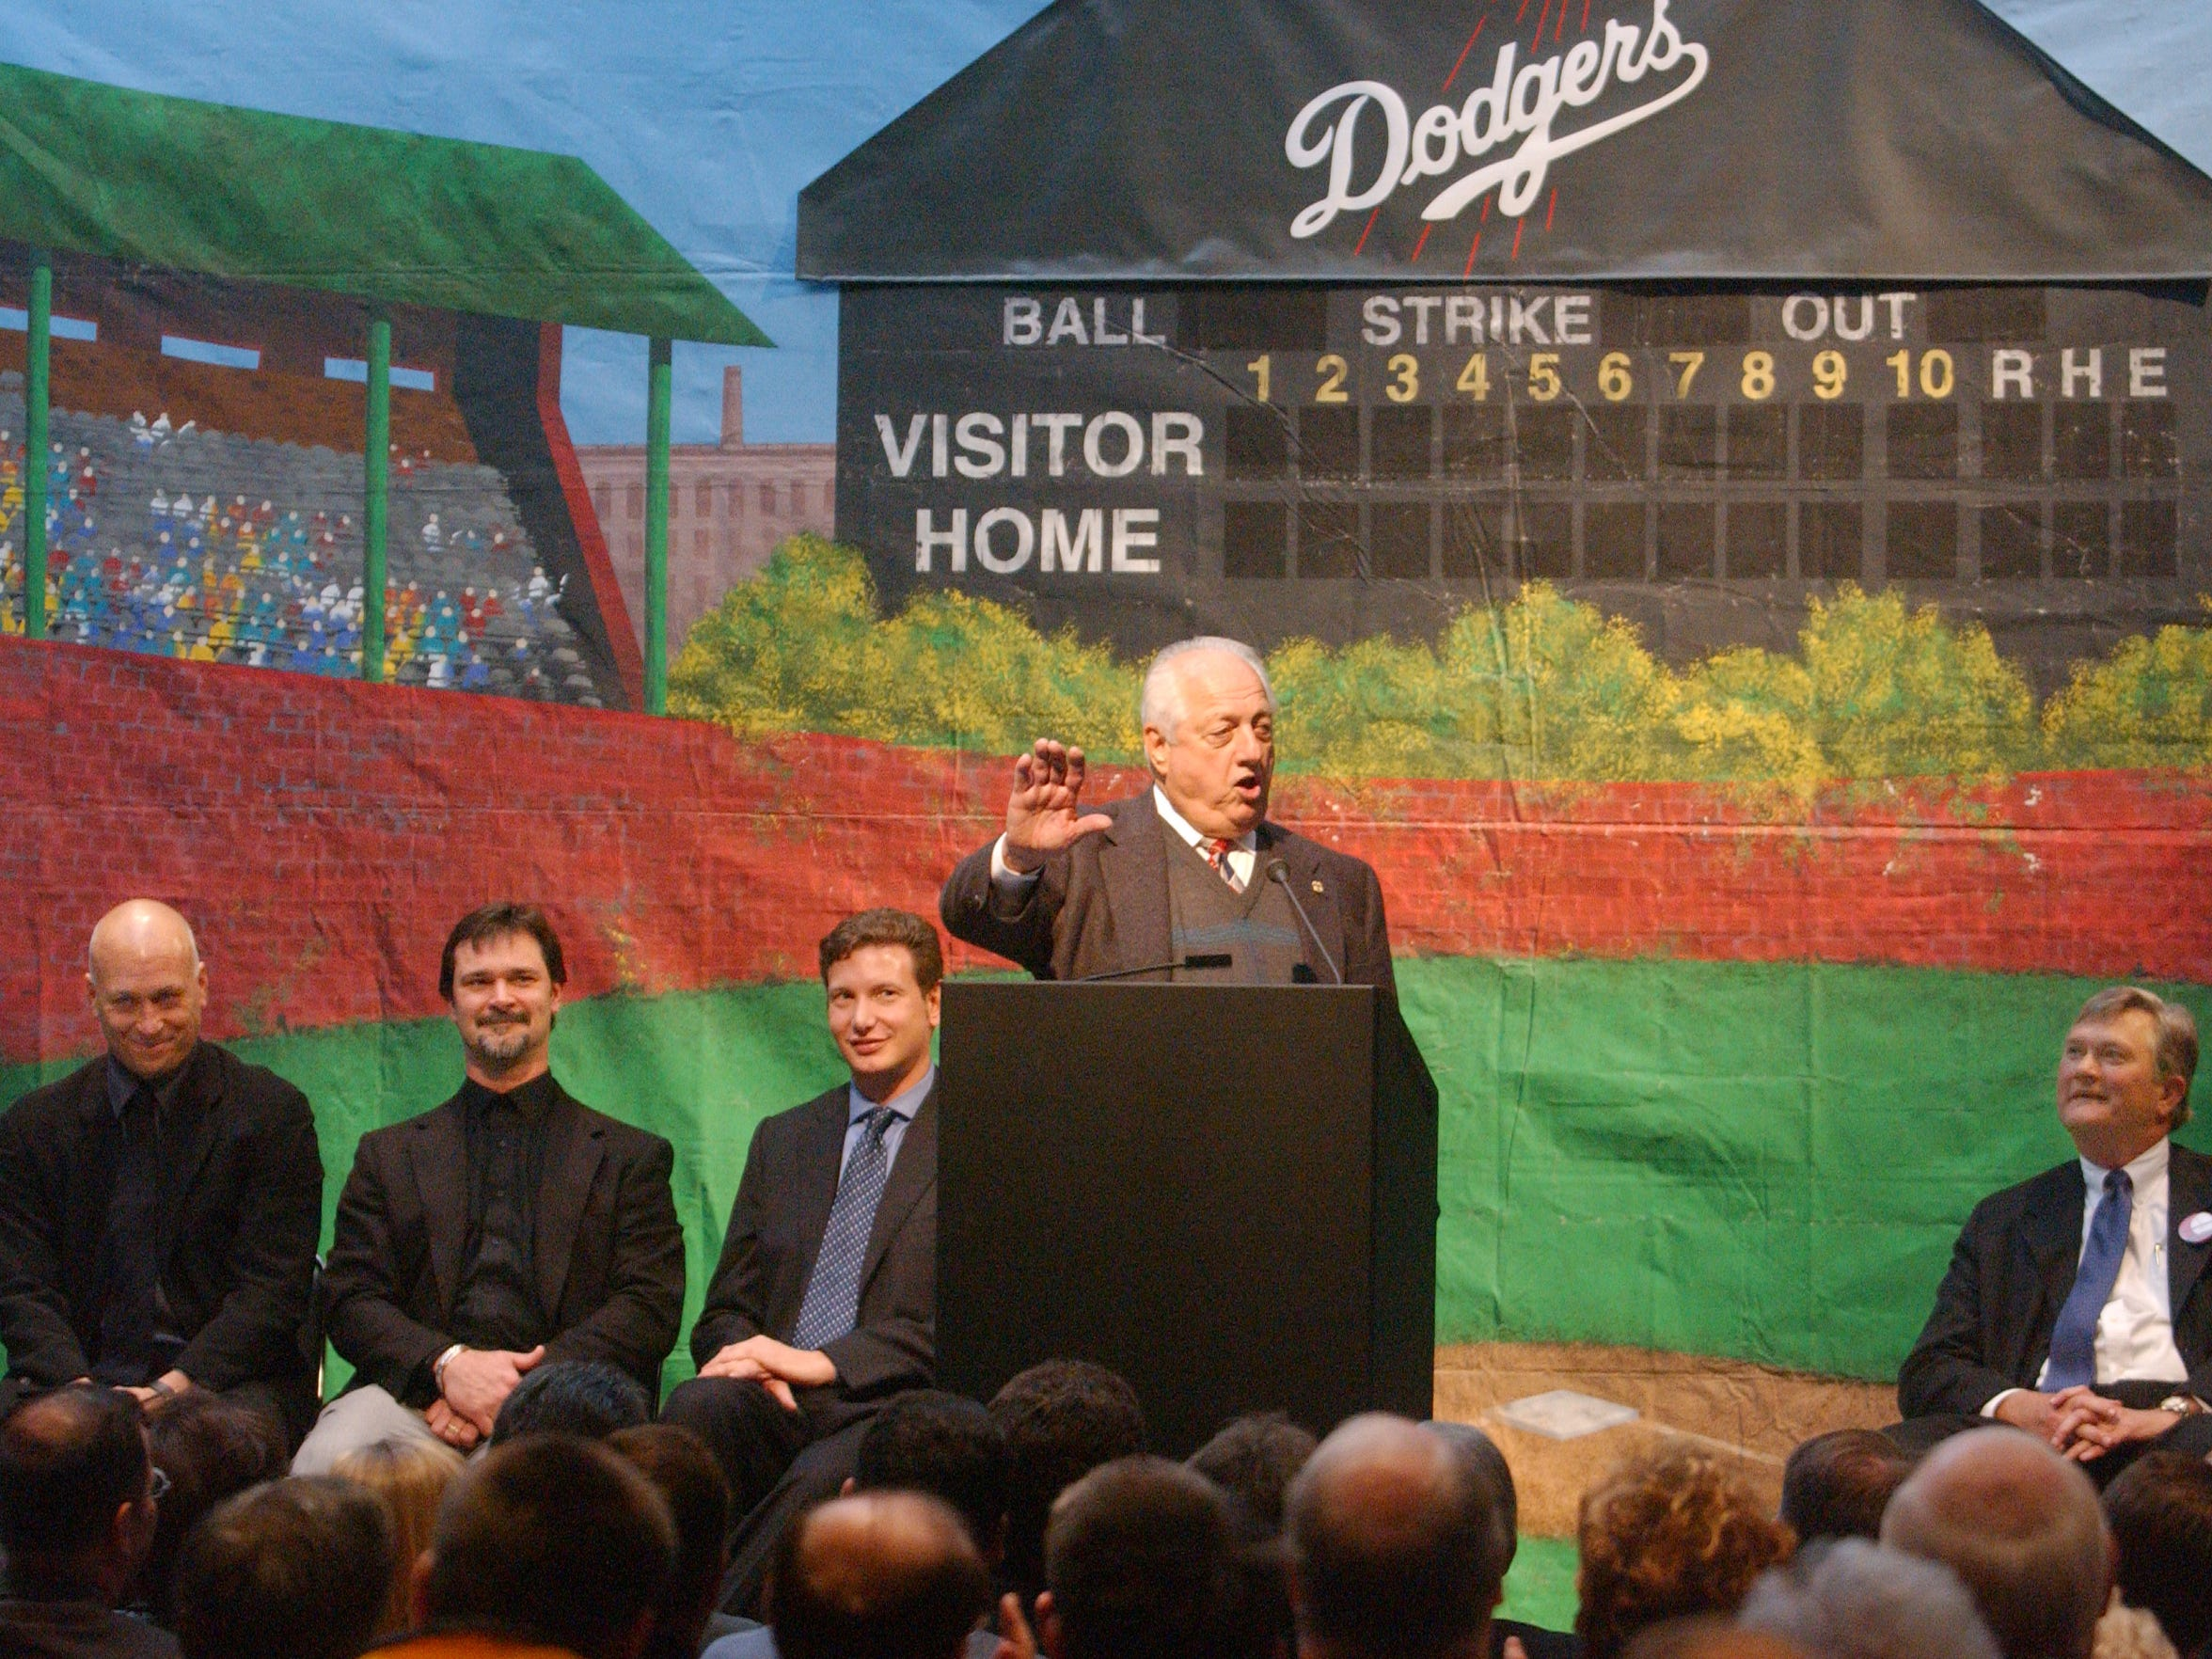 Tommy Lasorda entertains the crowd during a large press conference at the Centre in Evansville in 2003. The South Georgia Waves are expected to move to Evansville.  From left, Cal Ripken Jr., Don Mattingly, Dave Heller, Tommy Lasorda and Niel Ellerbrook.